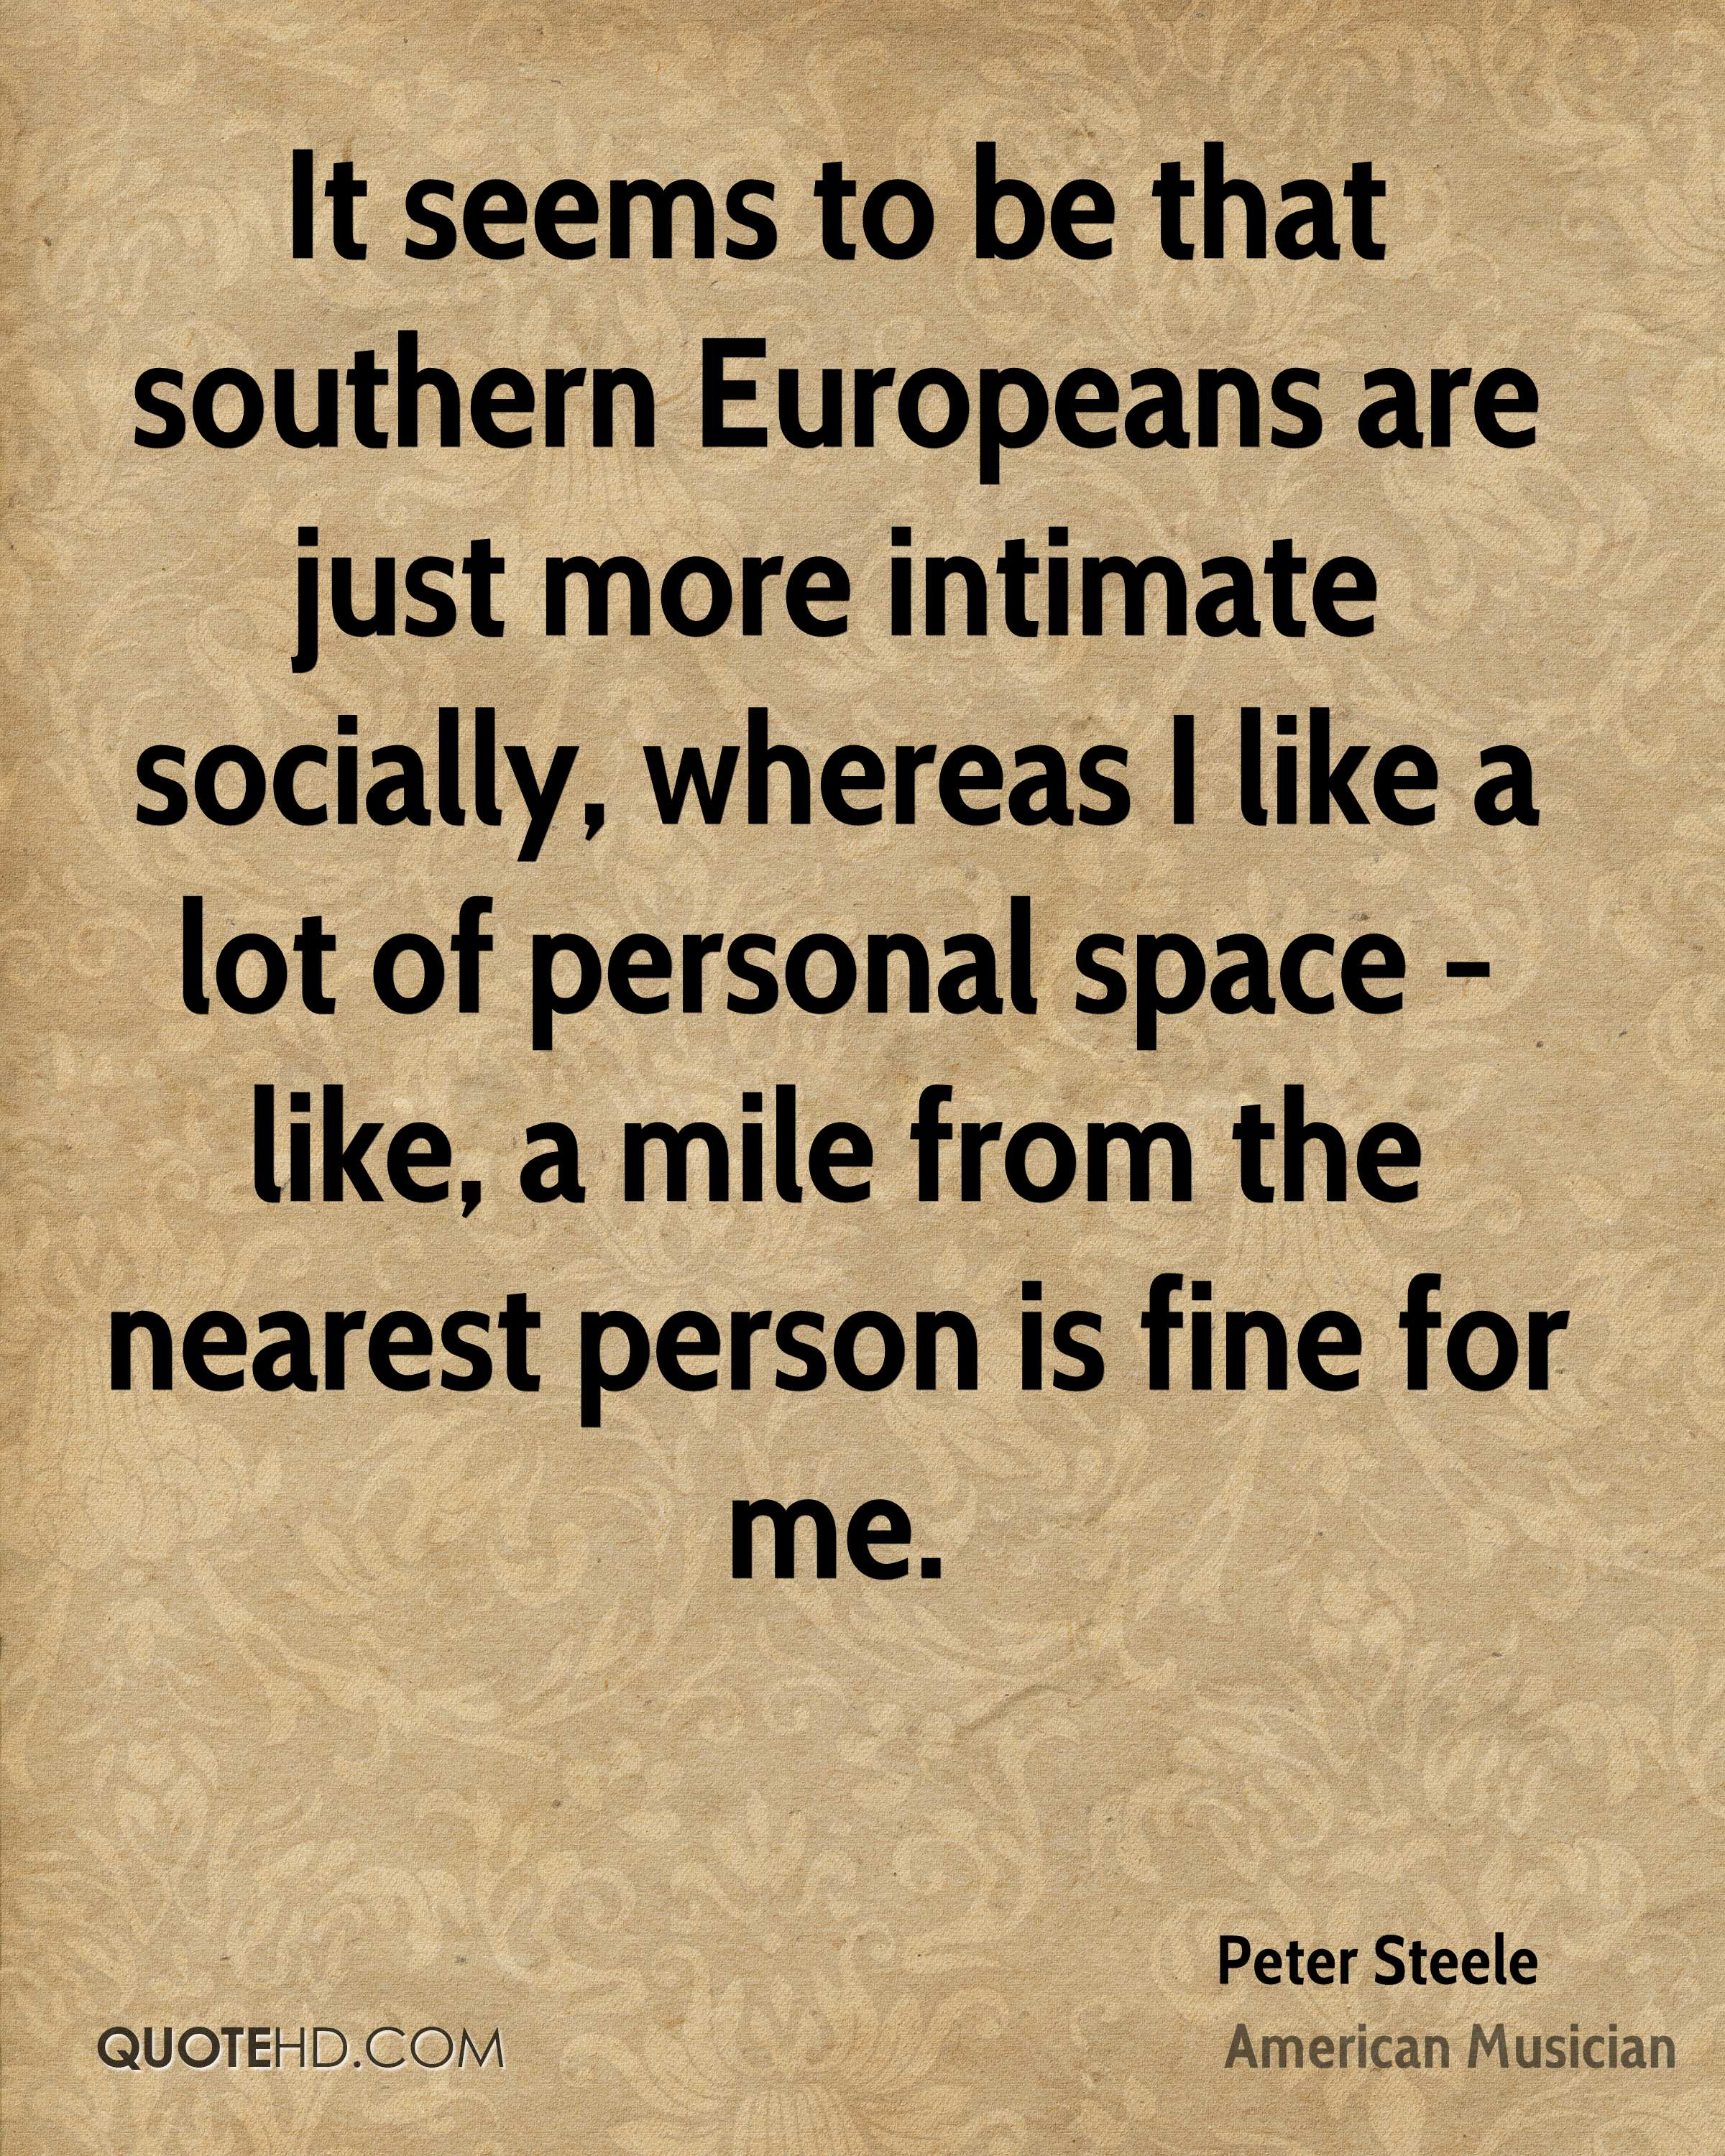 It seems to be that southern Europeans are just more intimate socially, whereas I like a lot of personal space - like, a mile from the nearest person is fine for me.